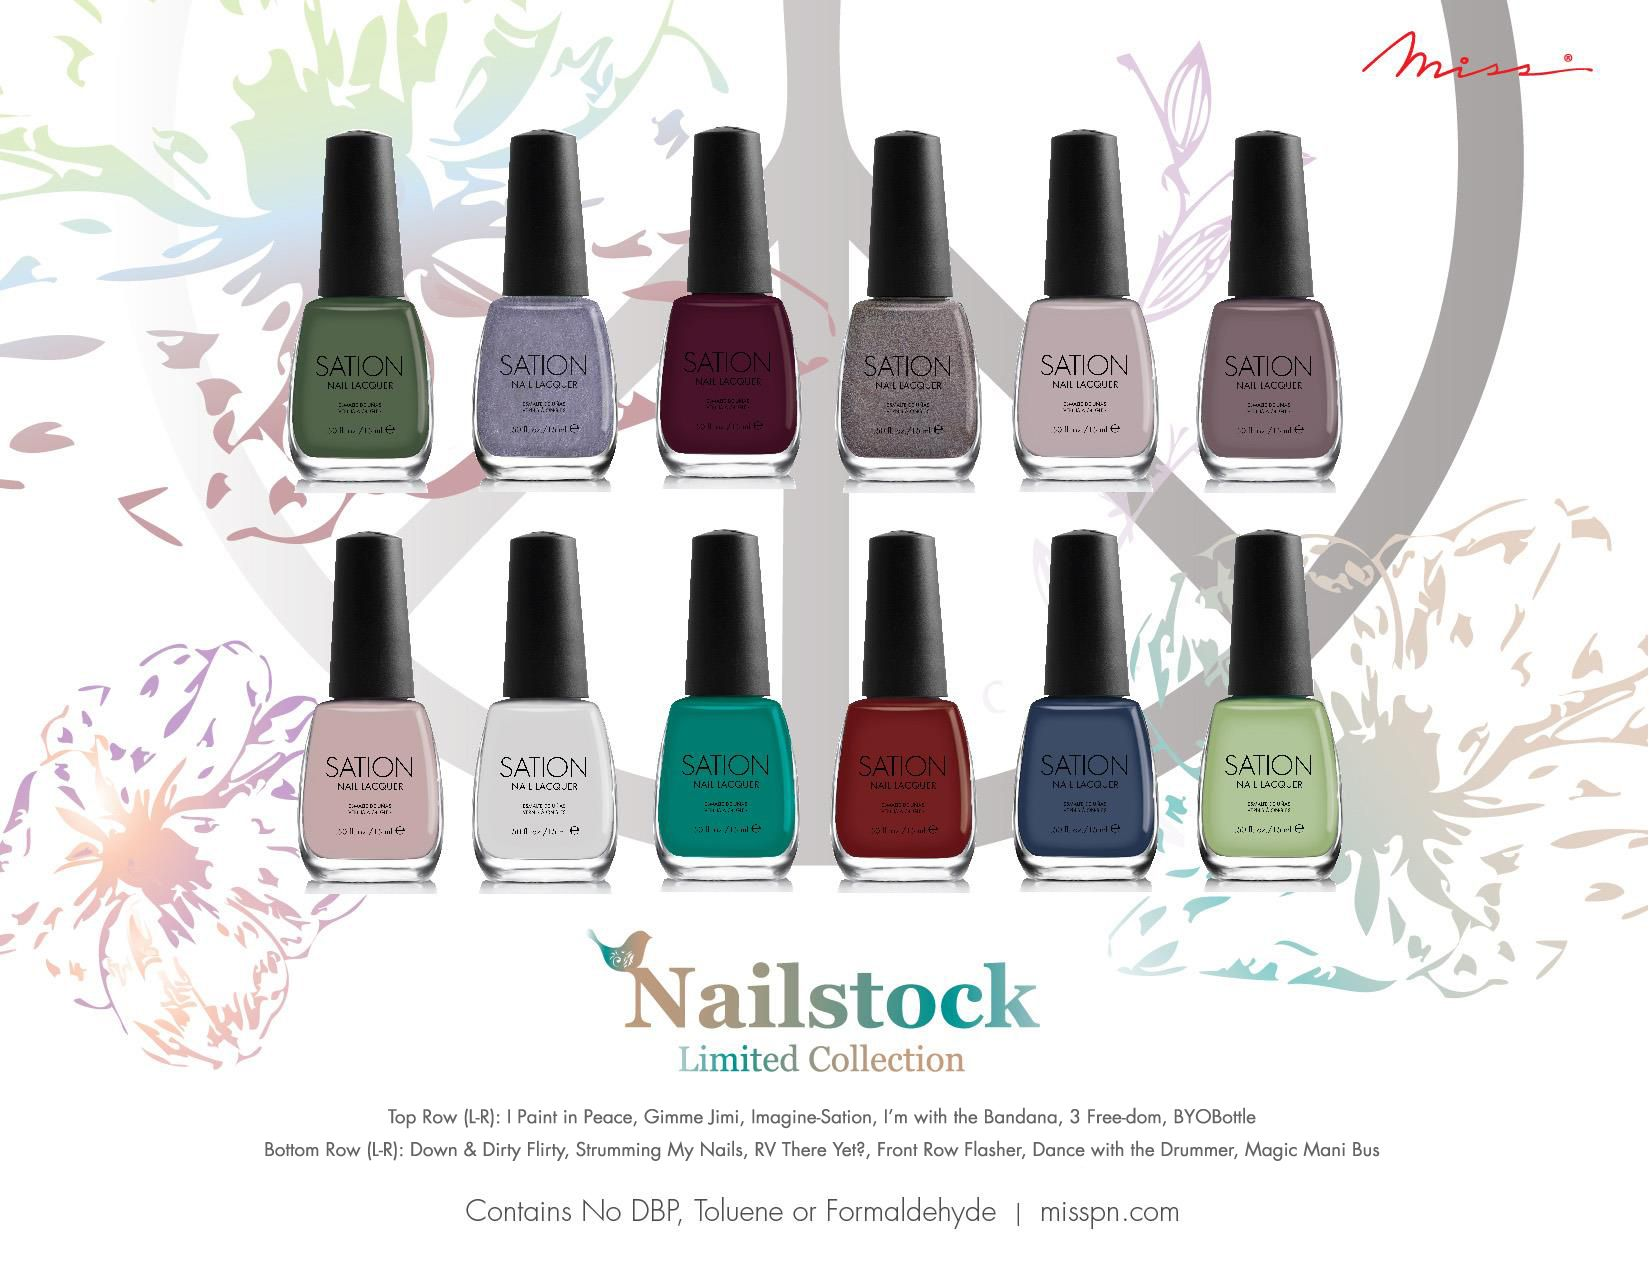 Miss Professional Nail's Limited III Collection